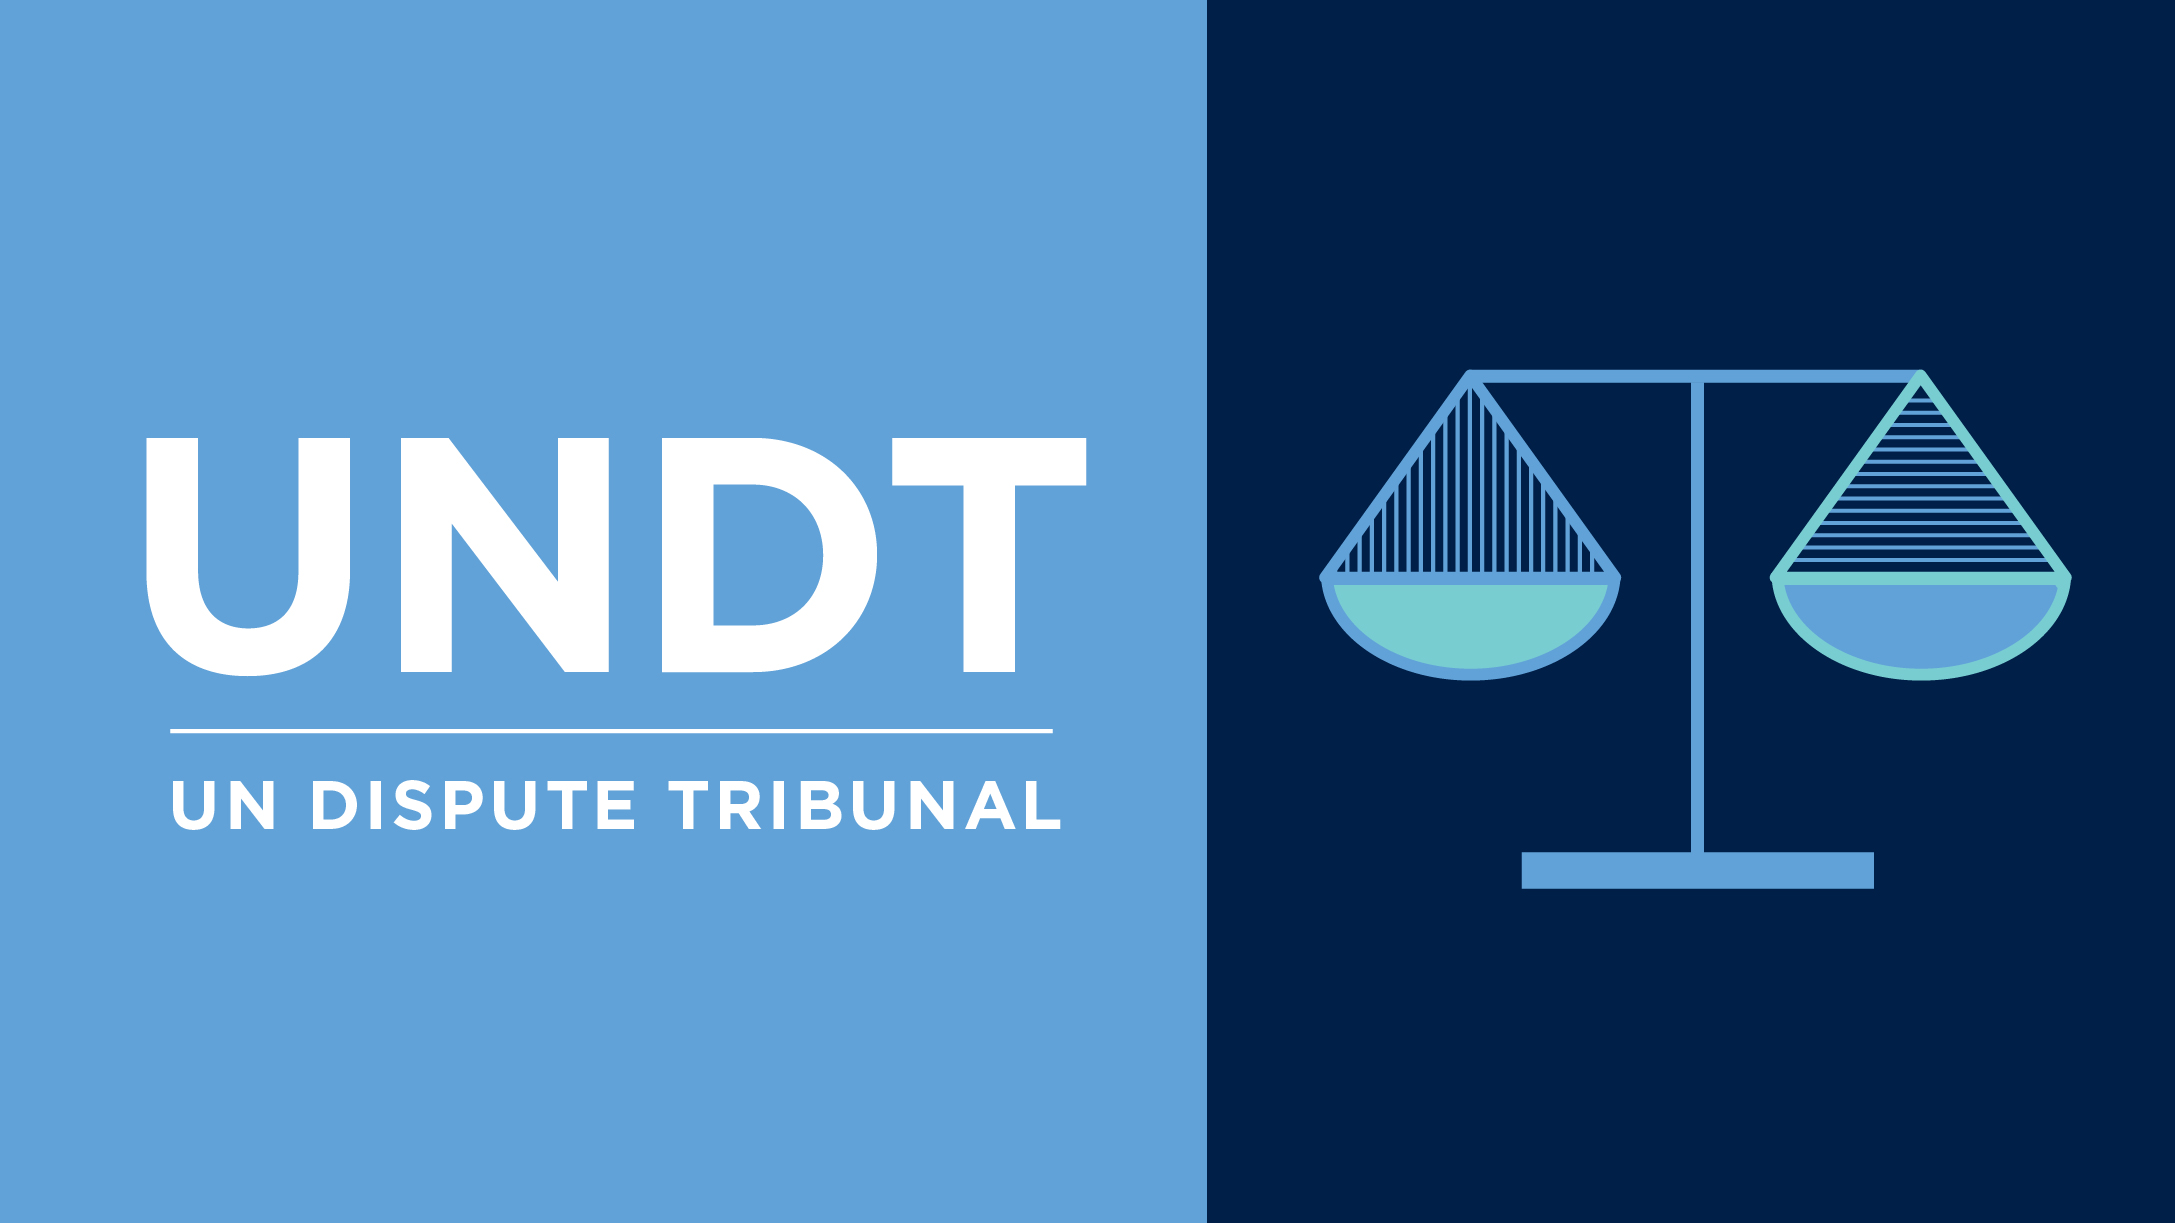 Graphic Of Illustration Scales Justice With Text That Reads UNDT